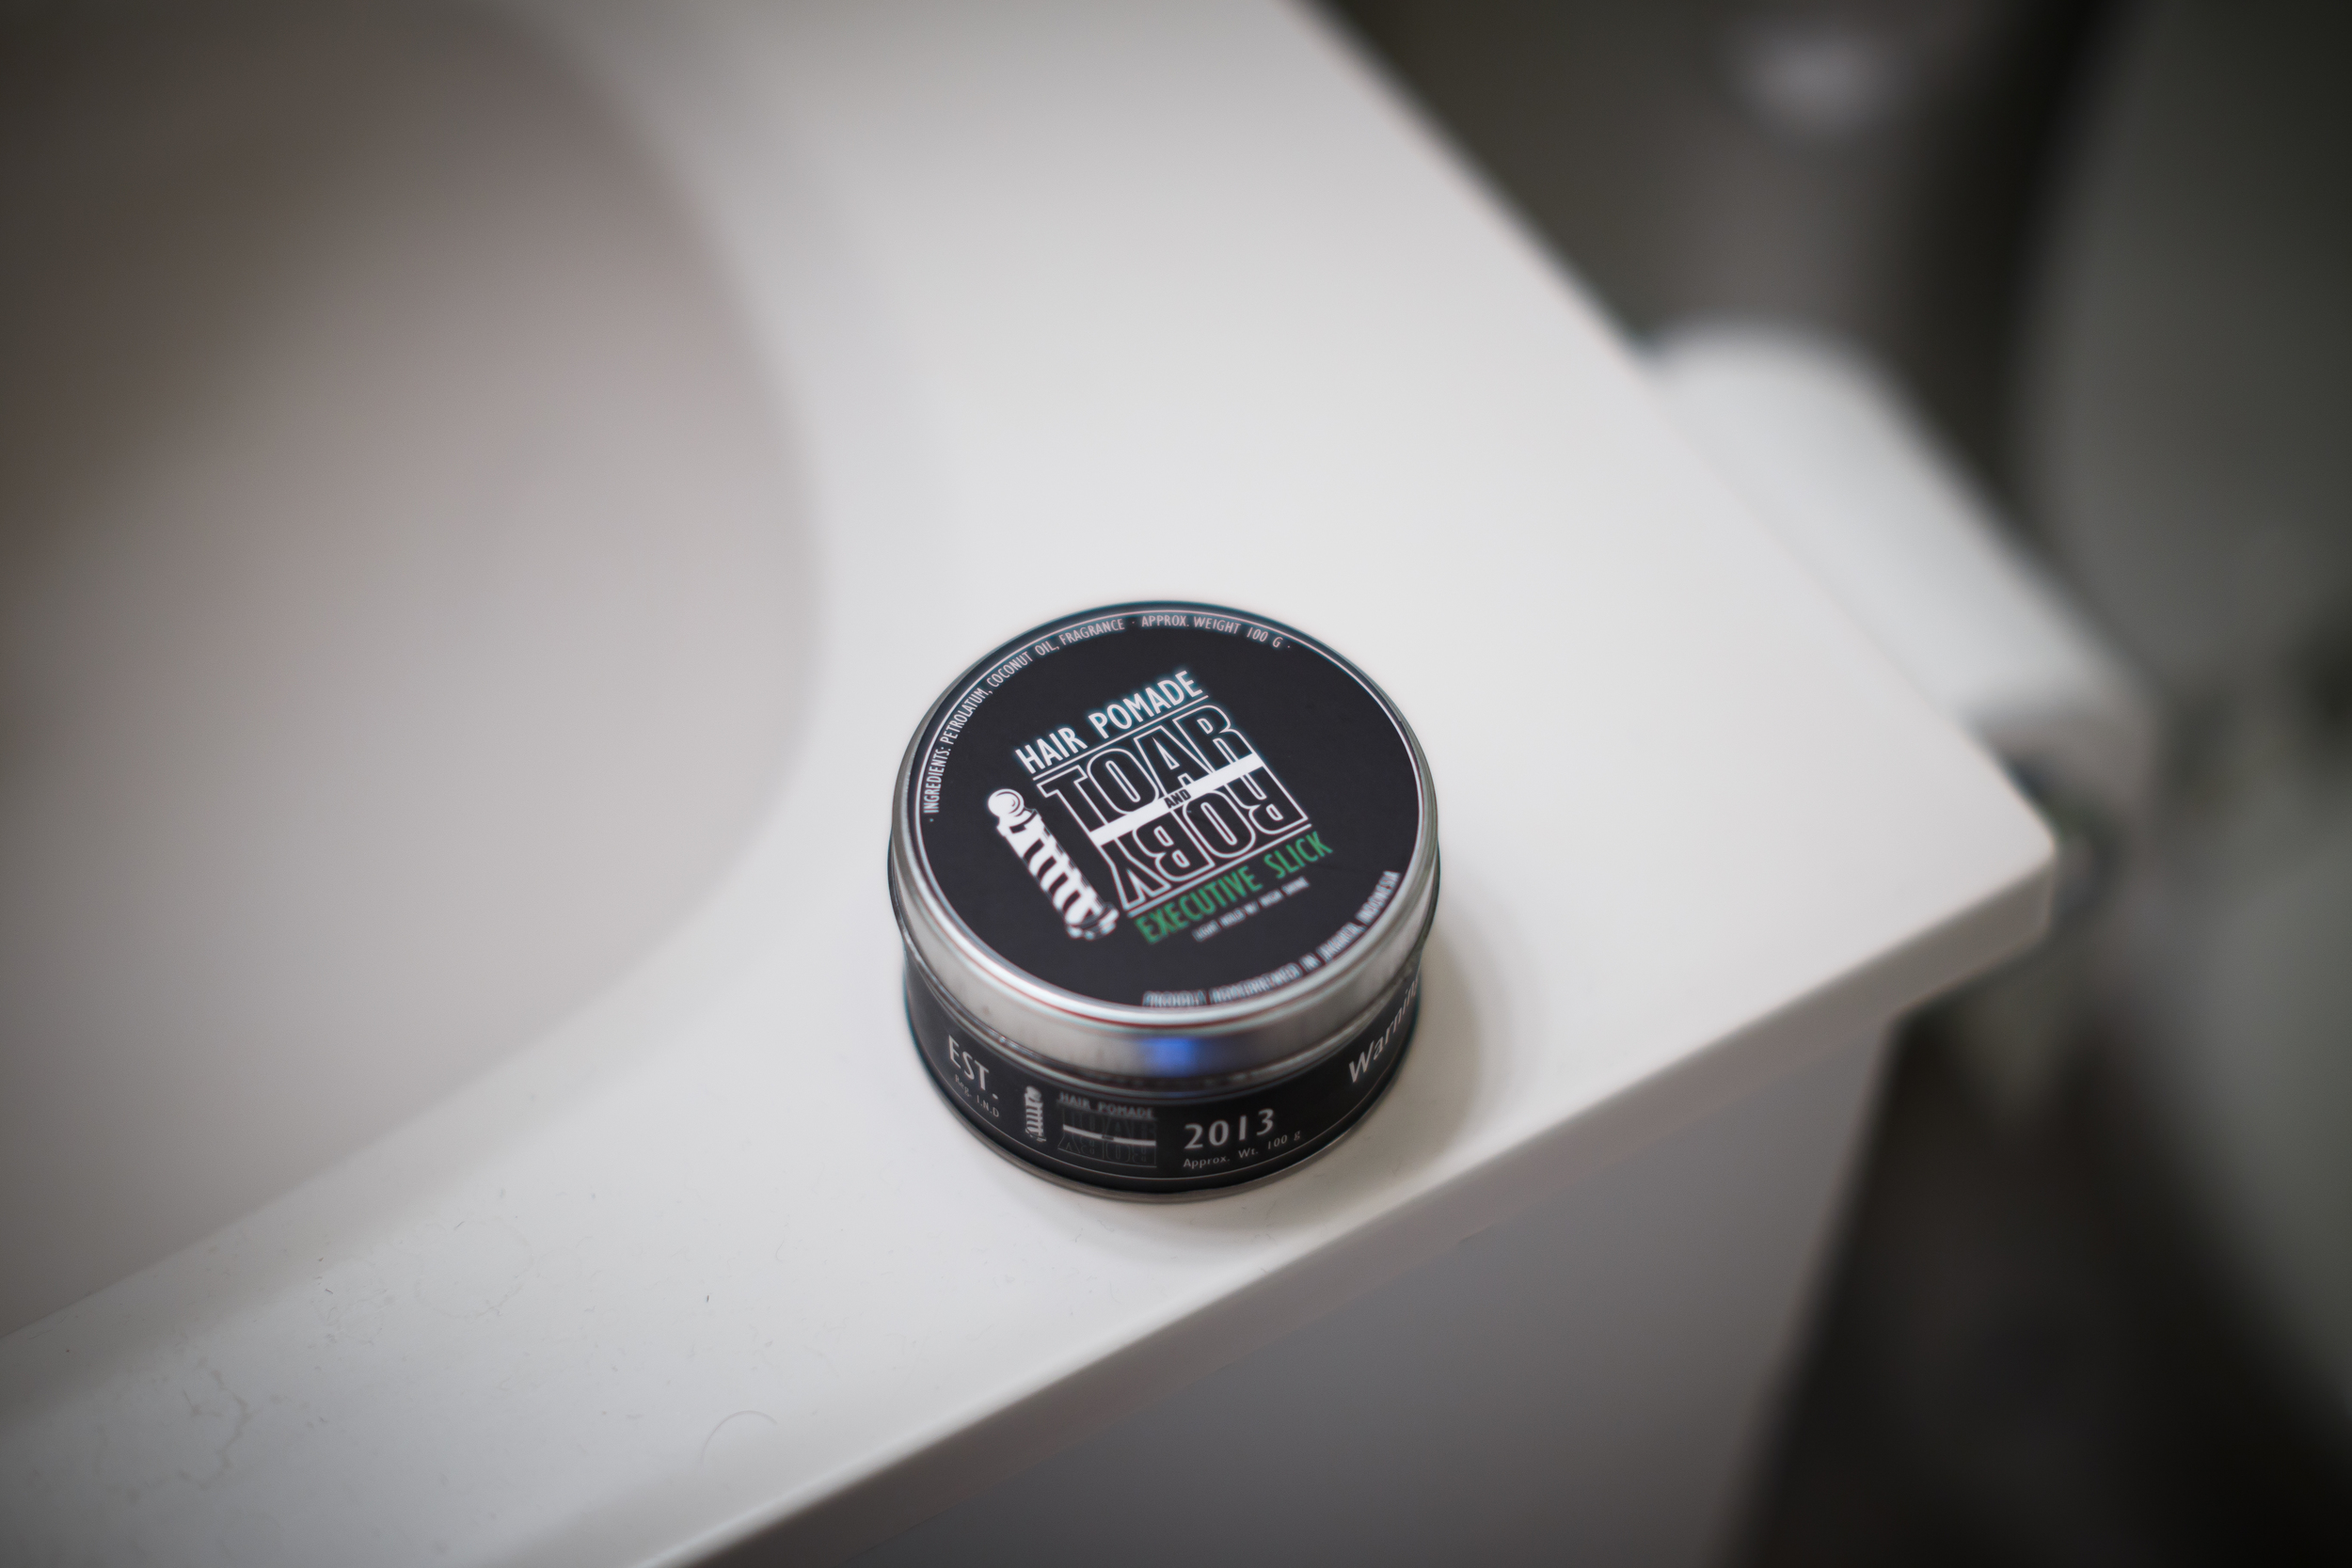 Toar and Roby Executive Slick Hair Pomade The Pomp Pompadour Oil-Based Oil Based Grease Light Hold High Shine Jar Tin Can